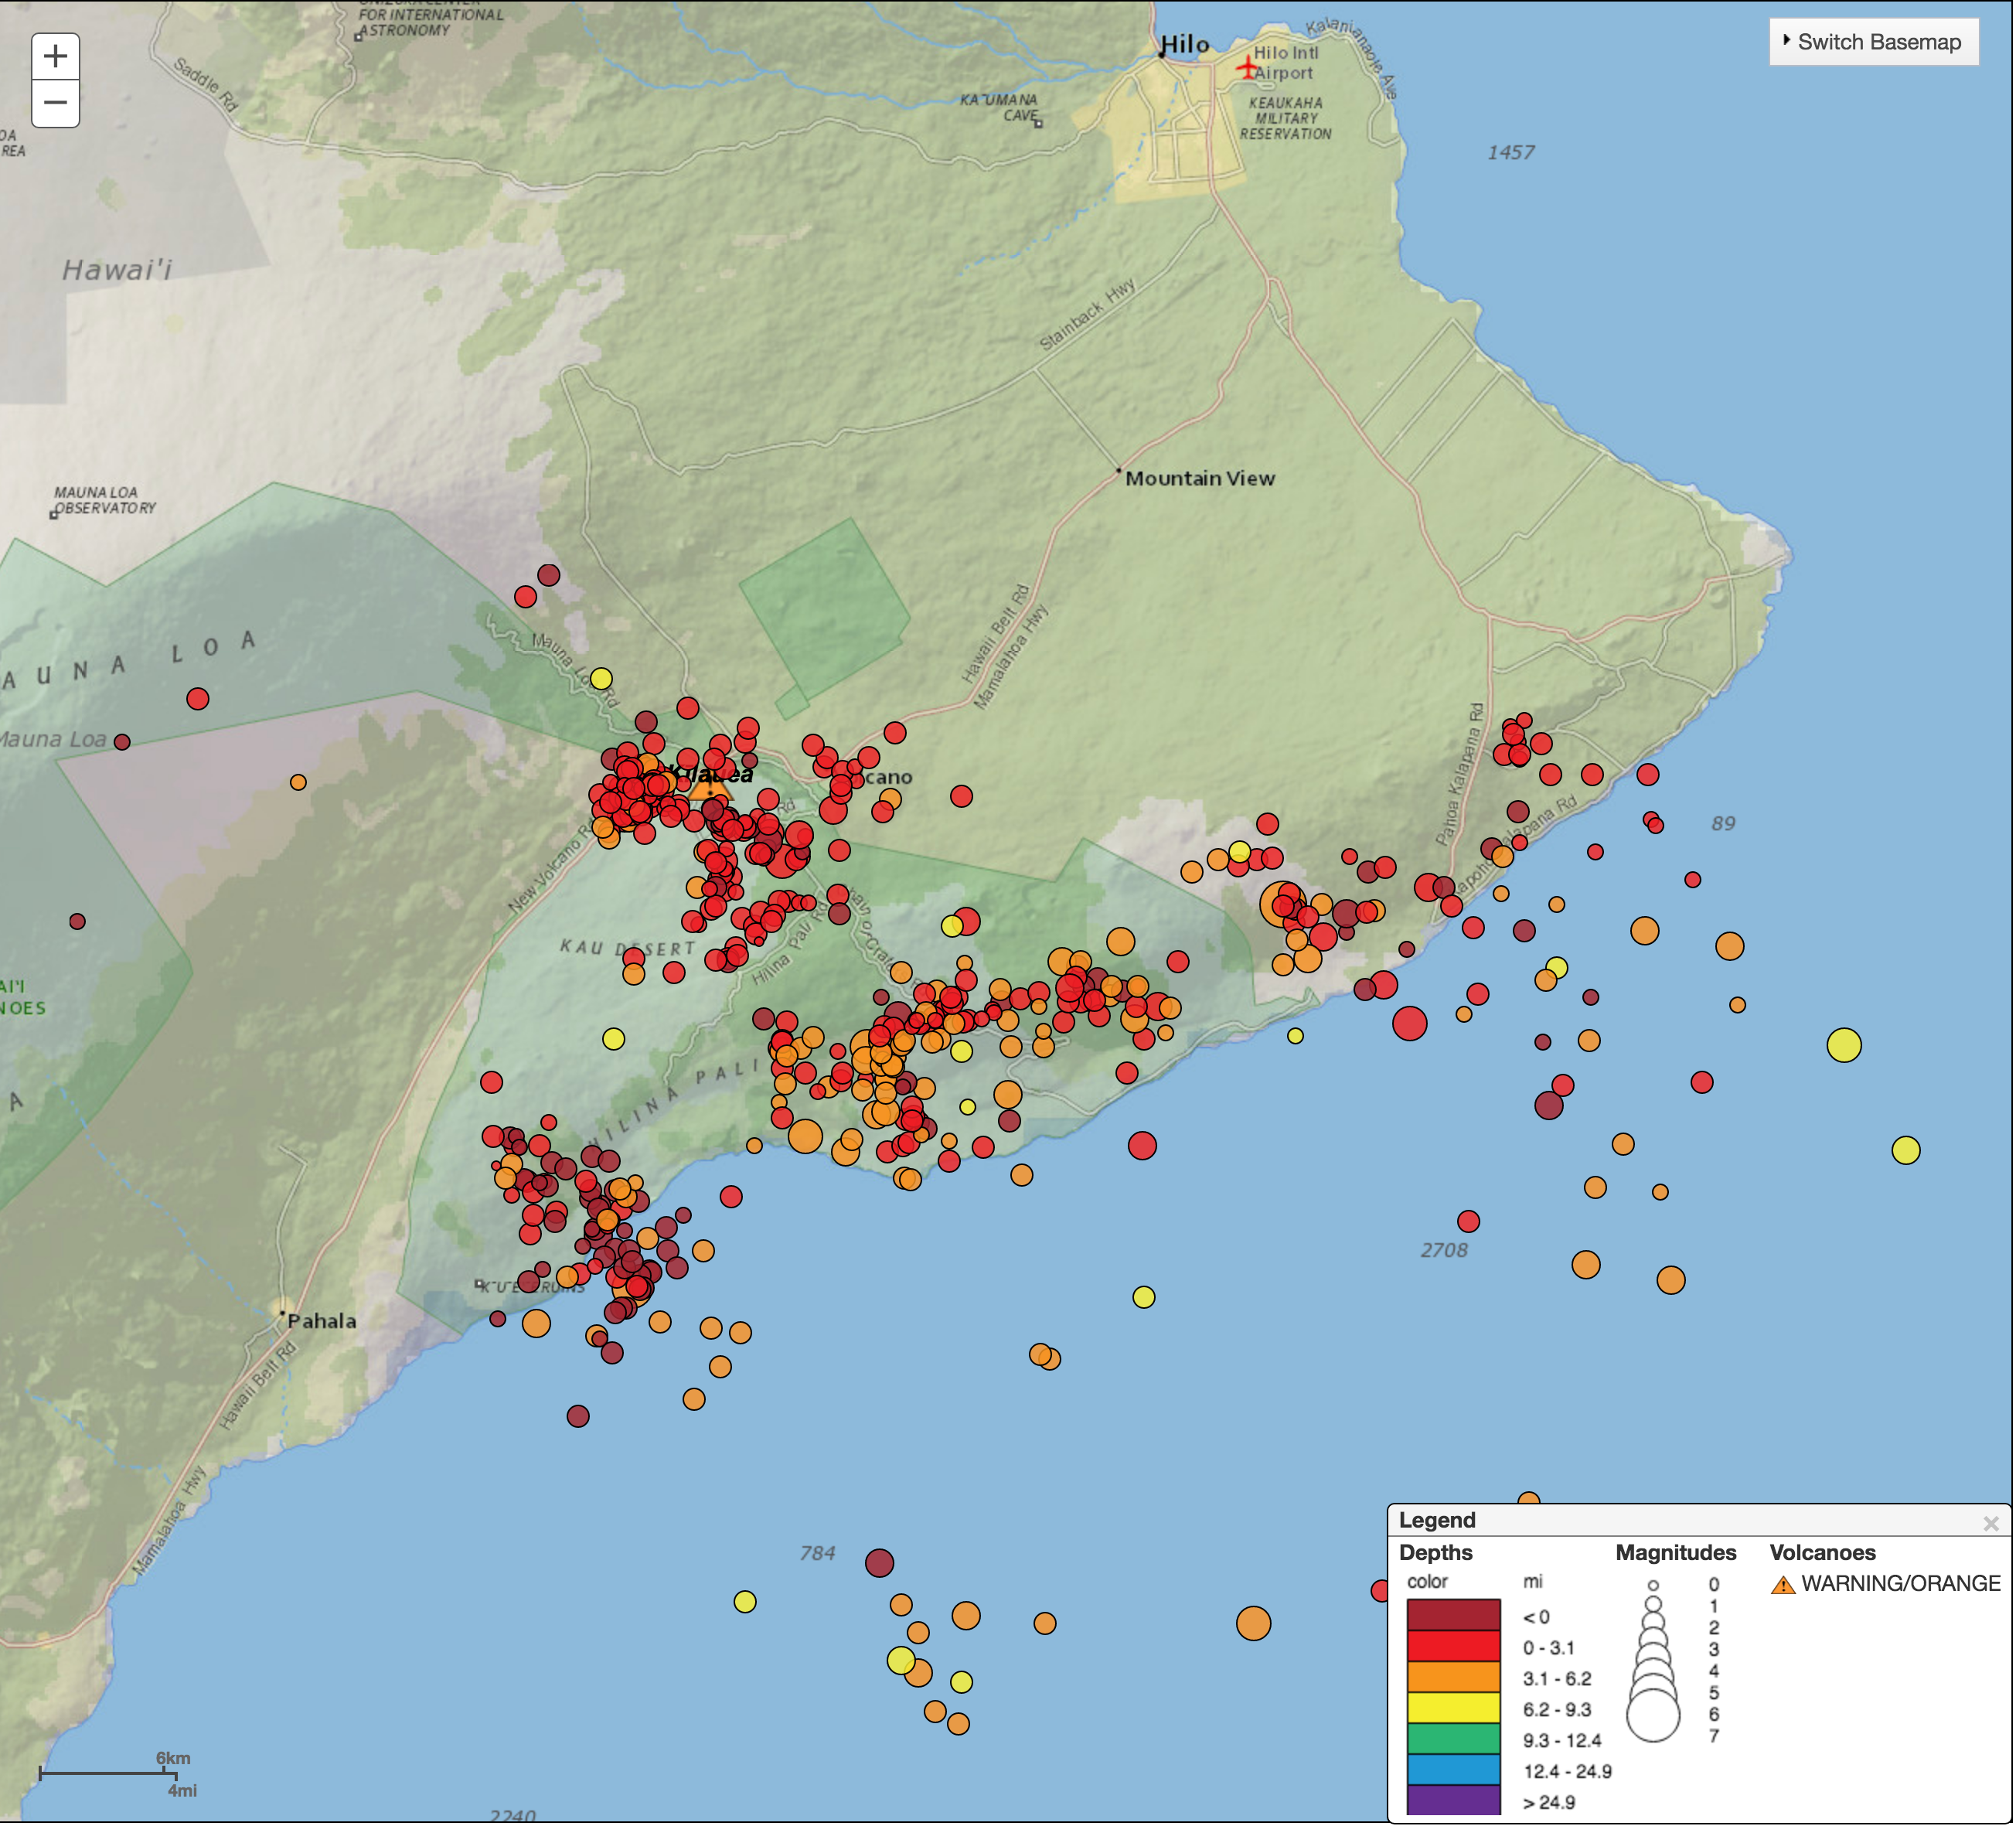 U.S. Geological Survey Hawaiian Volcano Observatory